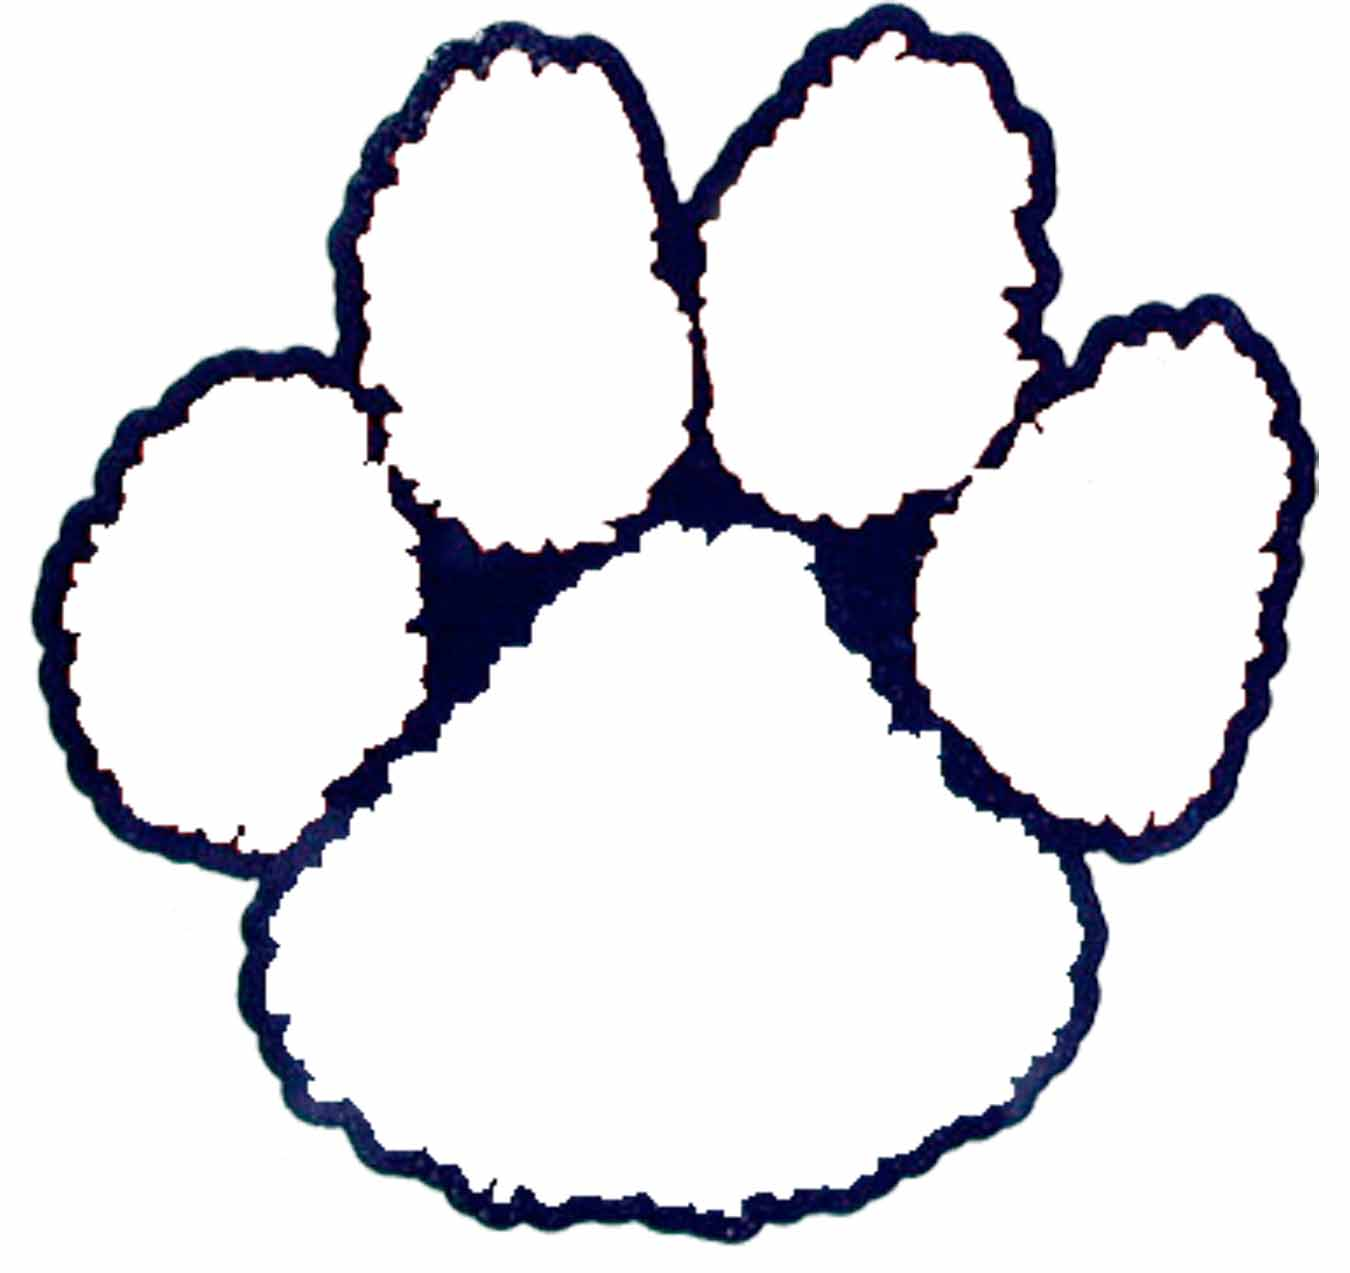 Cougar Paw Print Outline ClipArt